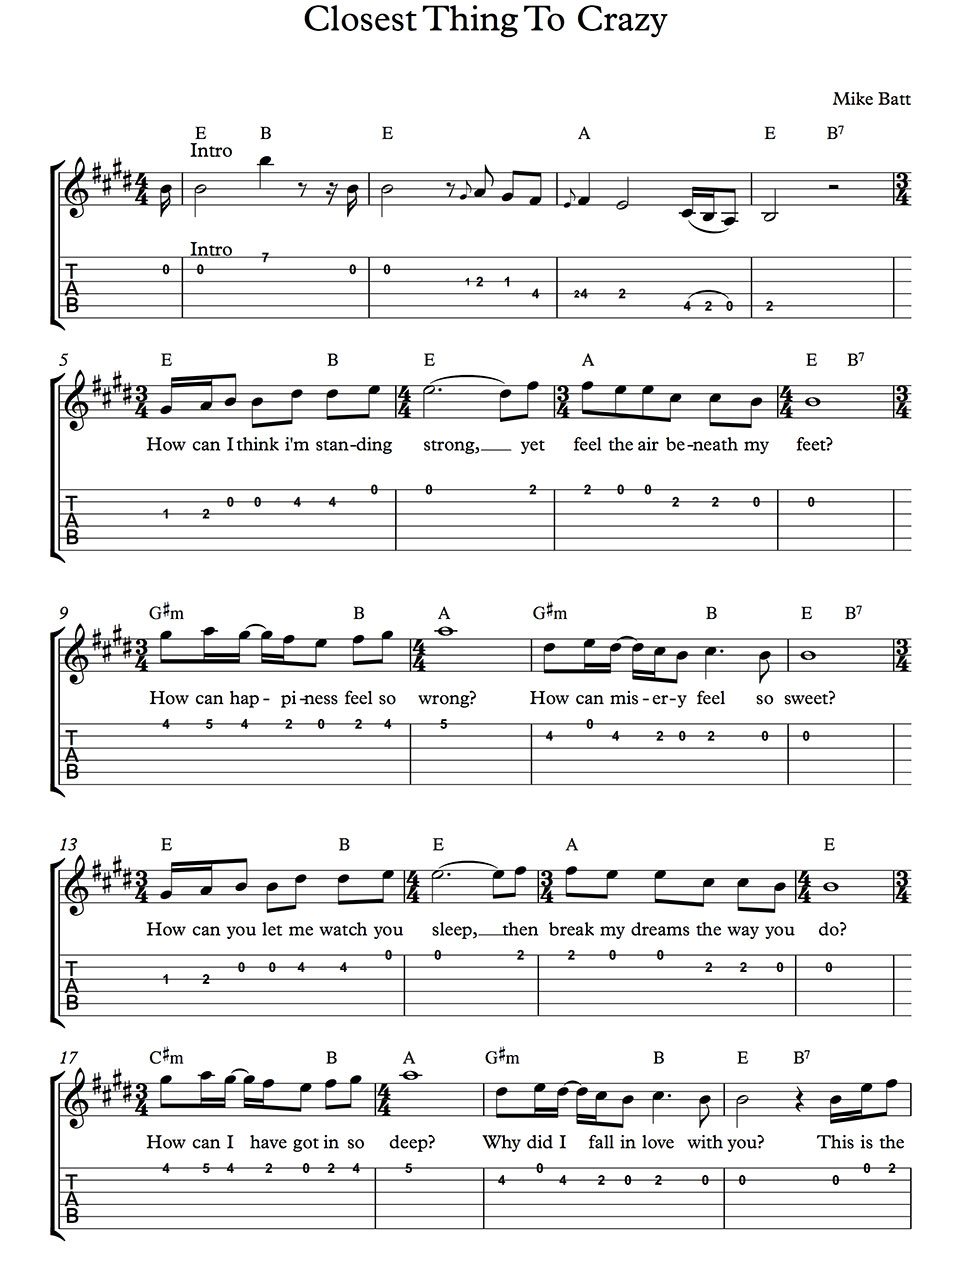 The closest thing to crazy katie melua guitar chords lead sheet download pdf file hexwebz Image collections